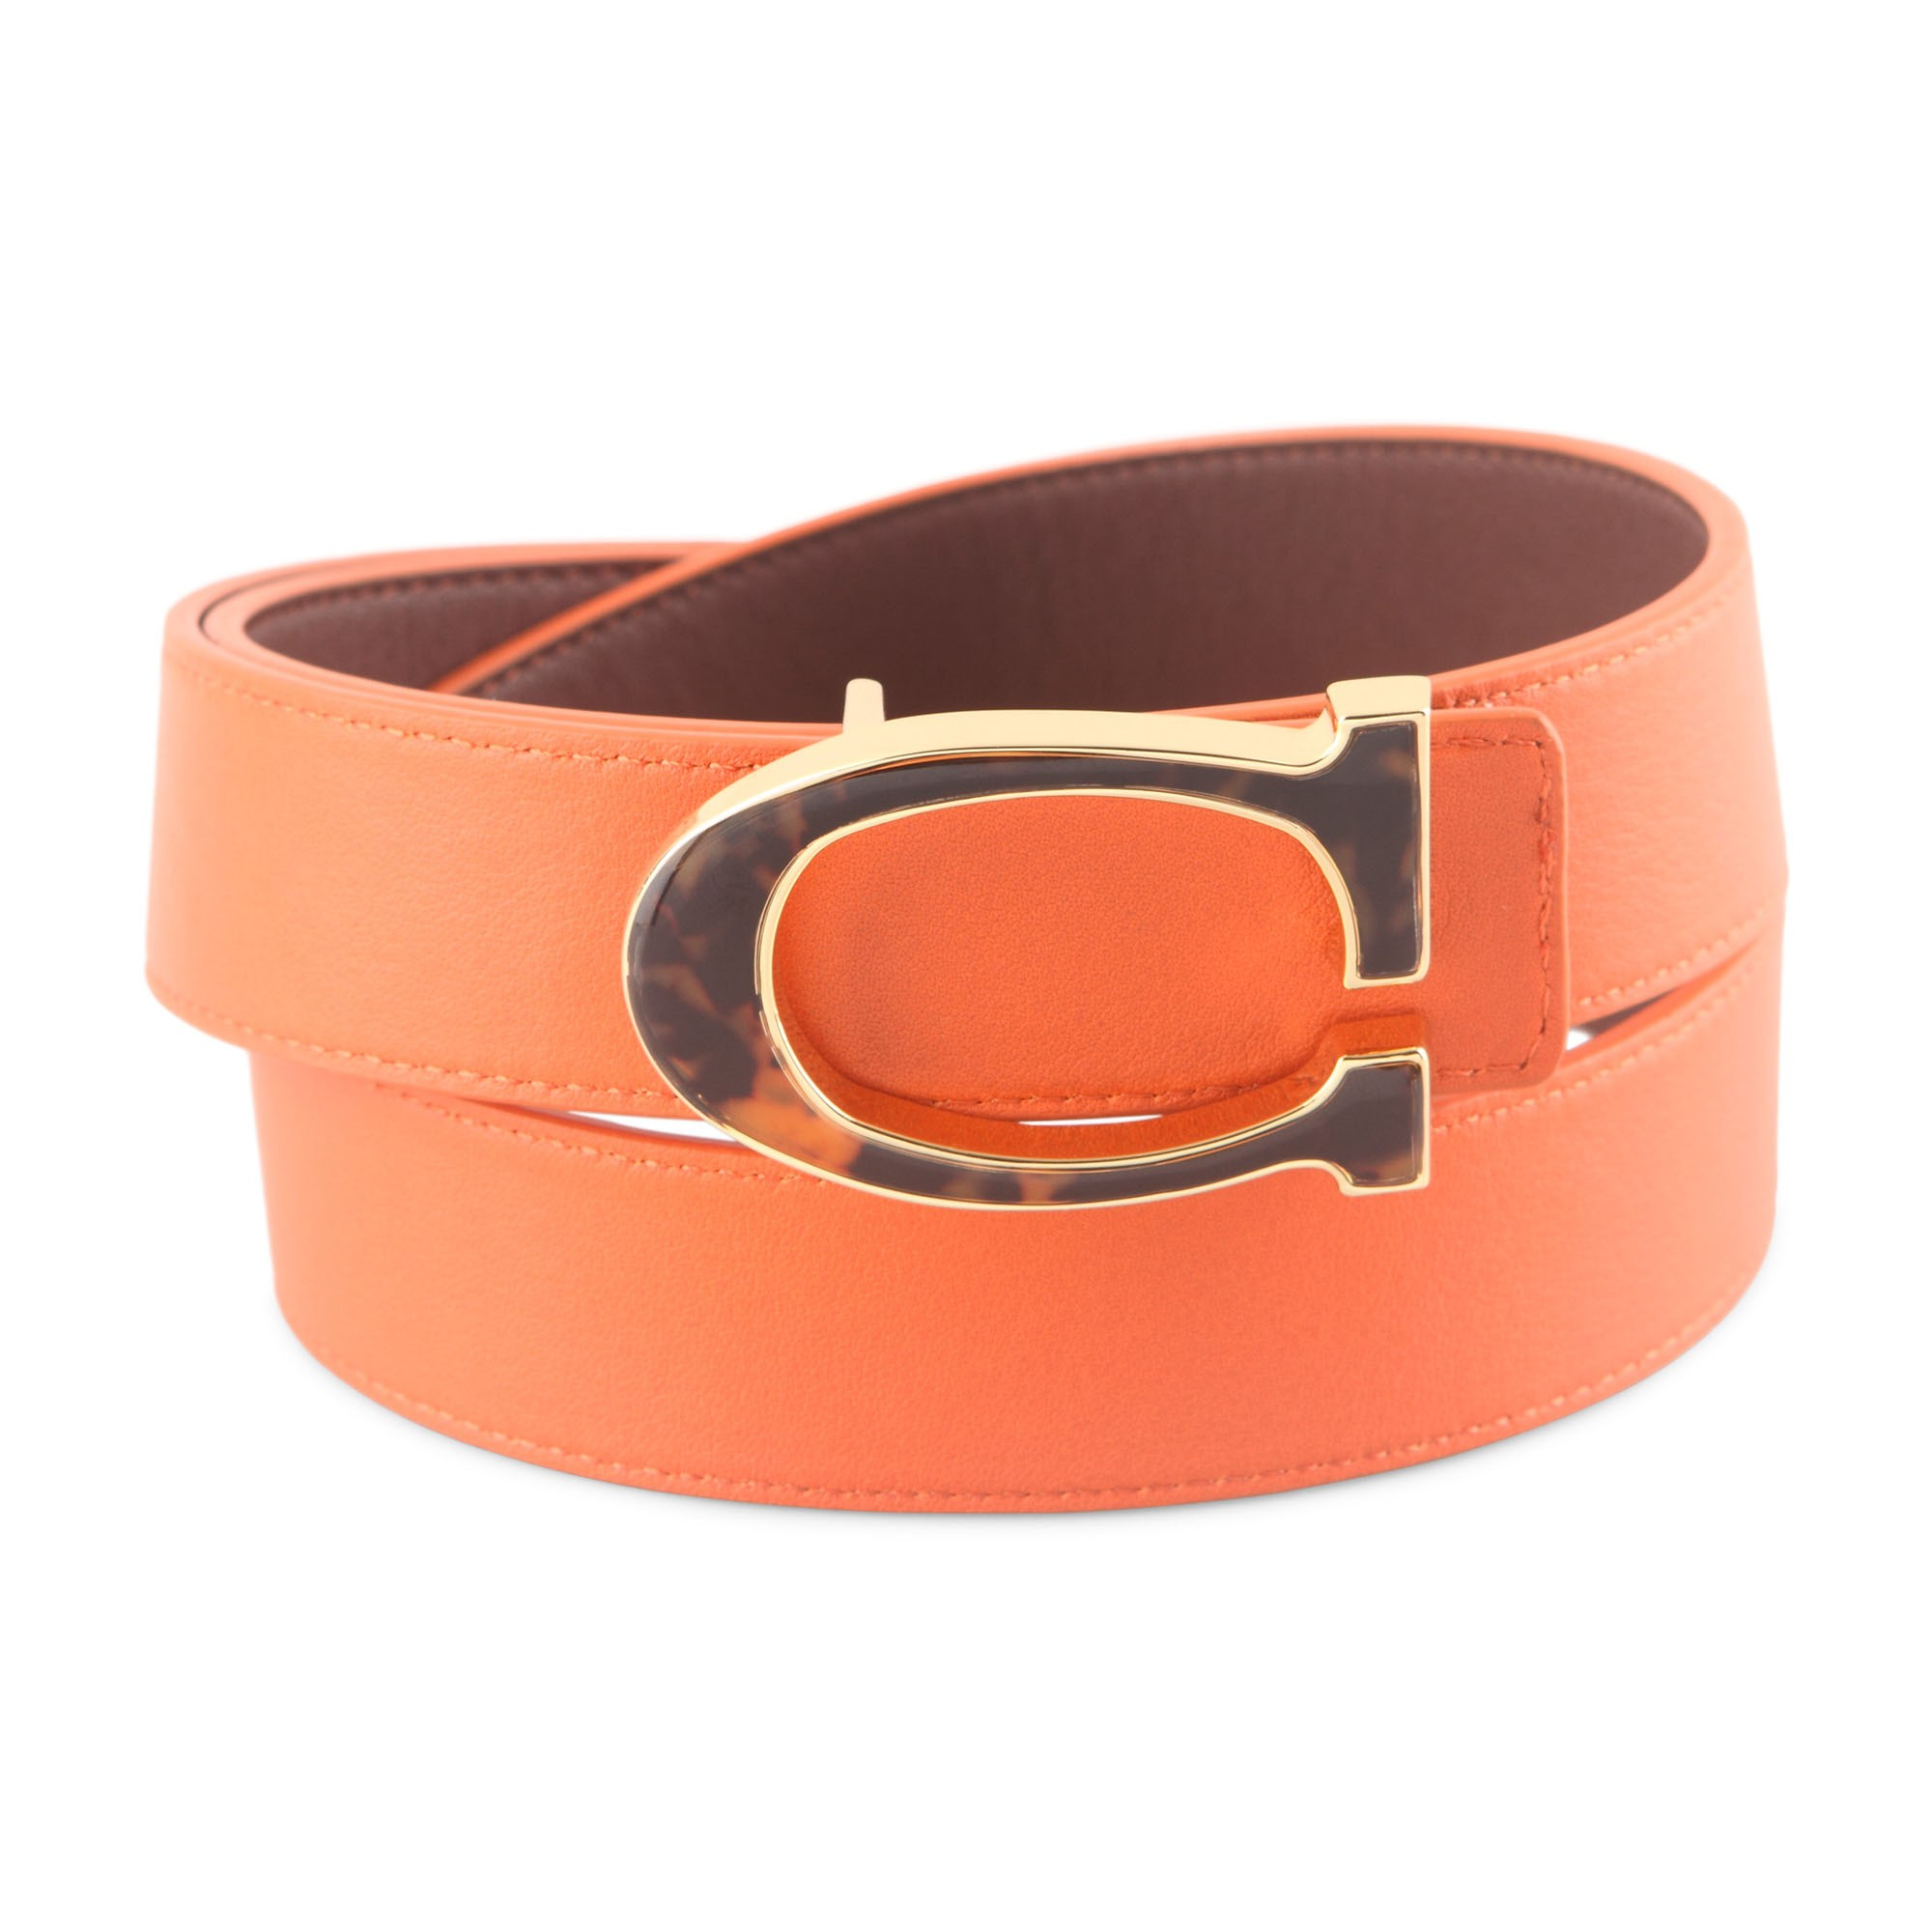 Whether you're wearing pants, capris, women's shorts, or even a dress, there's always going to be room for a belt. It's always a good idea to keep a trusty leather belt on .